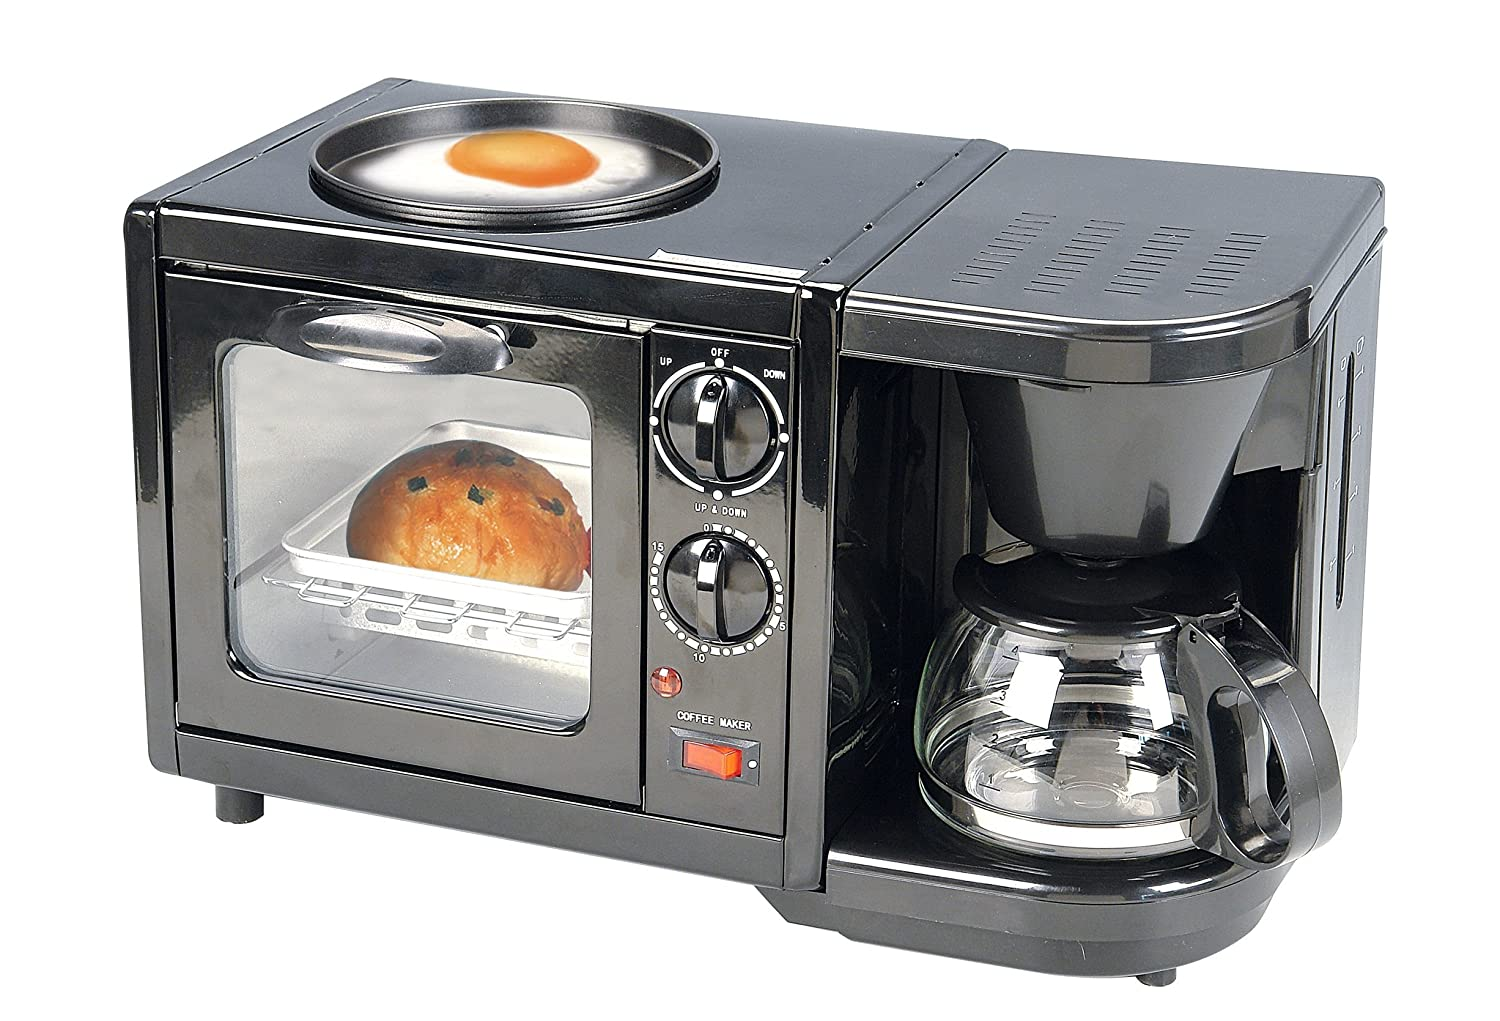 Coffee pot, oven and hotplate combo. Small and compact